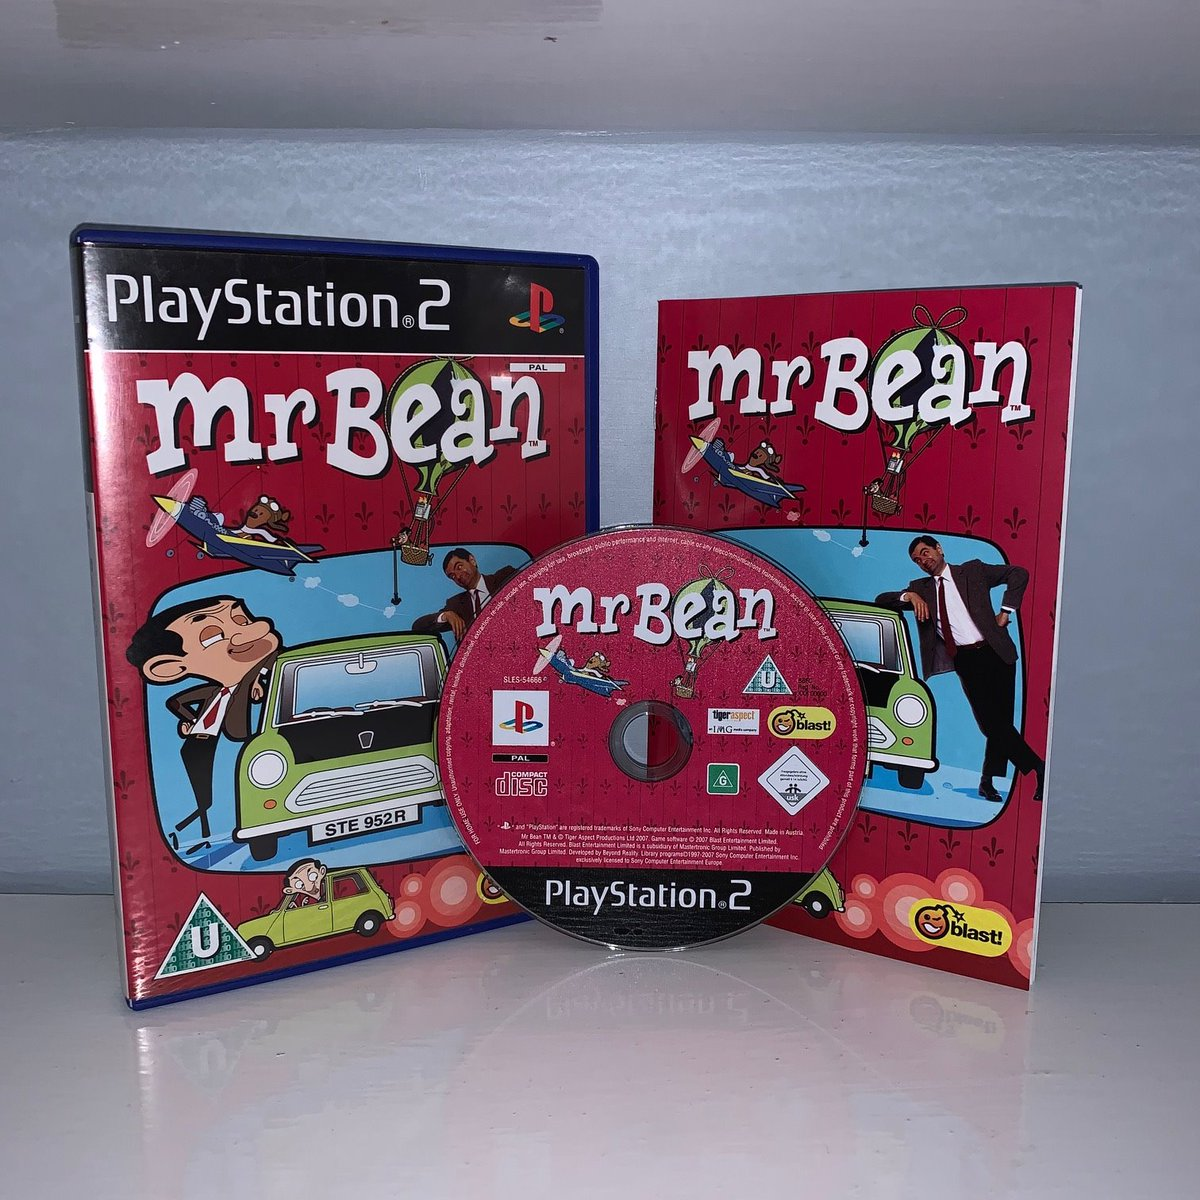 If you ever find yourself tempted and wanting to play #MrBean (no idea why) then at least play it on the Wii, far better game with far better controls.  Crash Bandicoot Wannabe Terrible Music Awful platform physics  #PS2sday #GamersUnite #shareyourgames #RETROGAMINGpic.twitter.com/fj7QB3J2eT